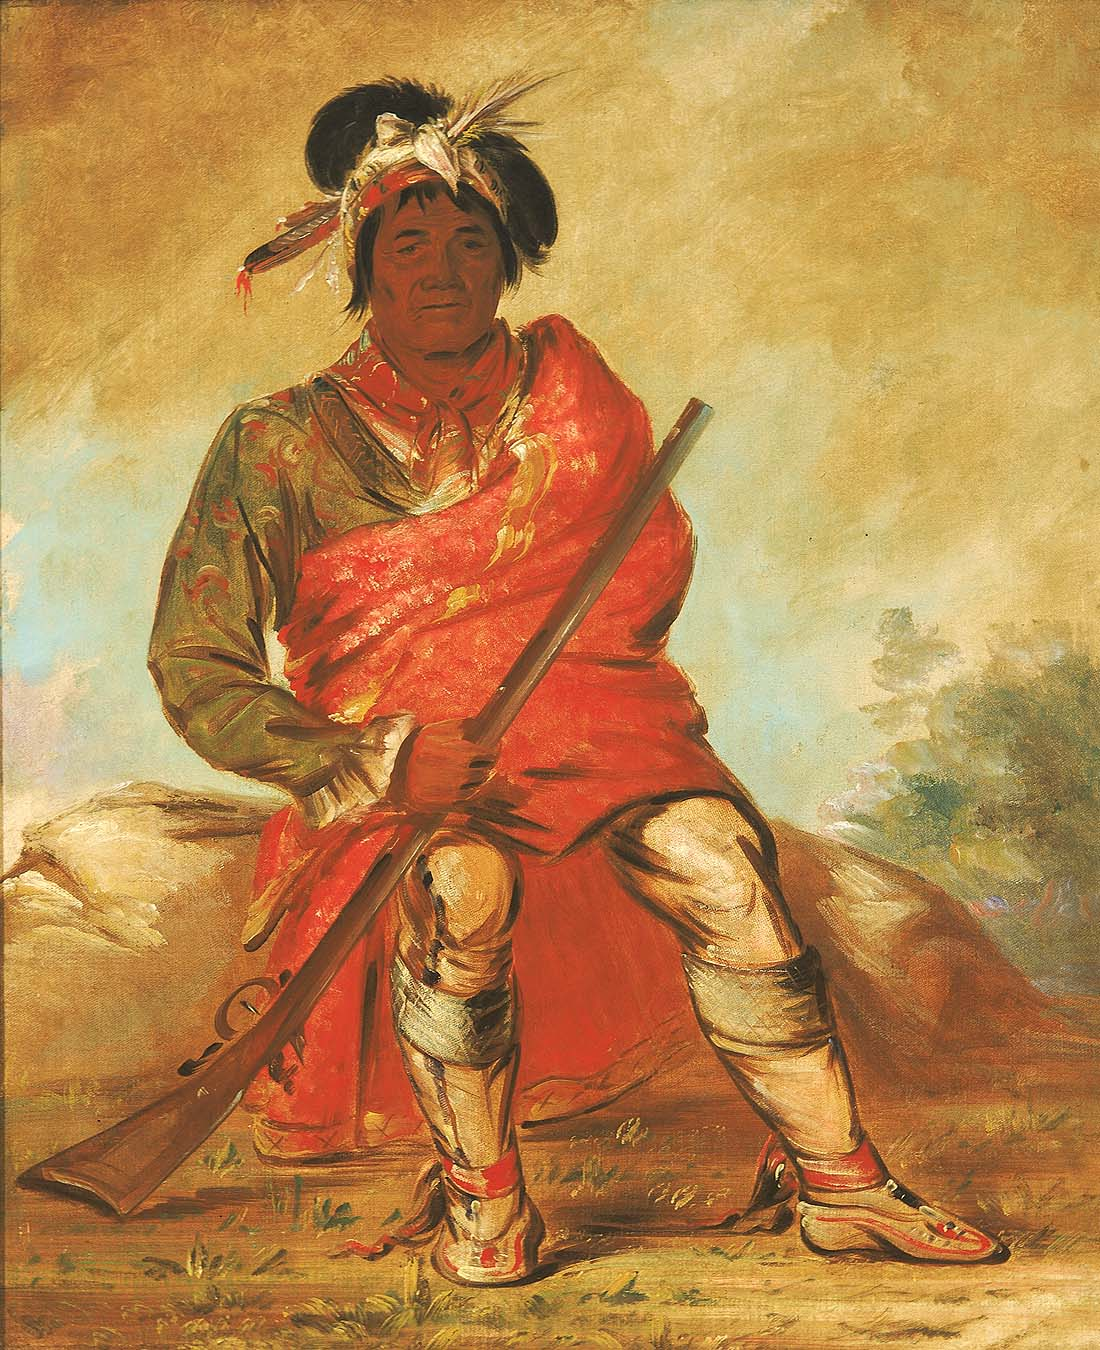 a discussion of chickasaw indian nation In oklahoma, the chickasaw, unable to find a new homeland, agreed to become choctaw citizens, to submit to the laws and political organization of the choctaw nation, and to become a fourth district in the choctaw nation.